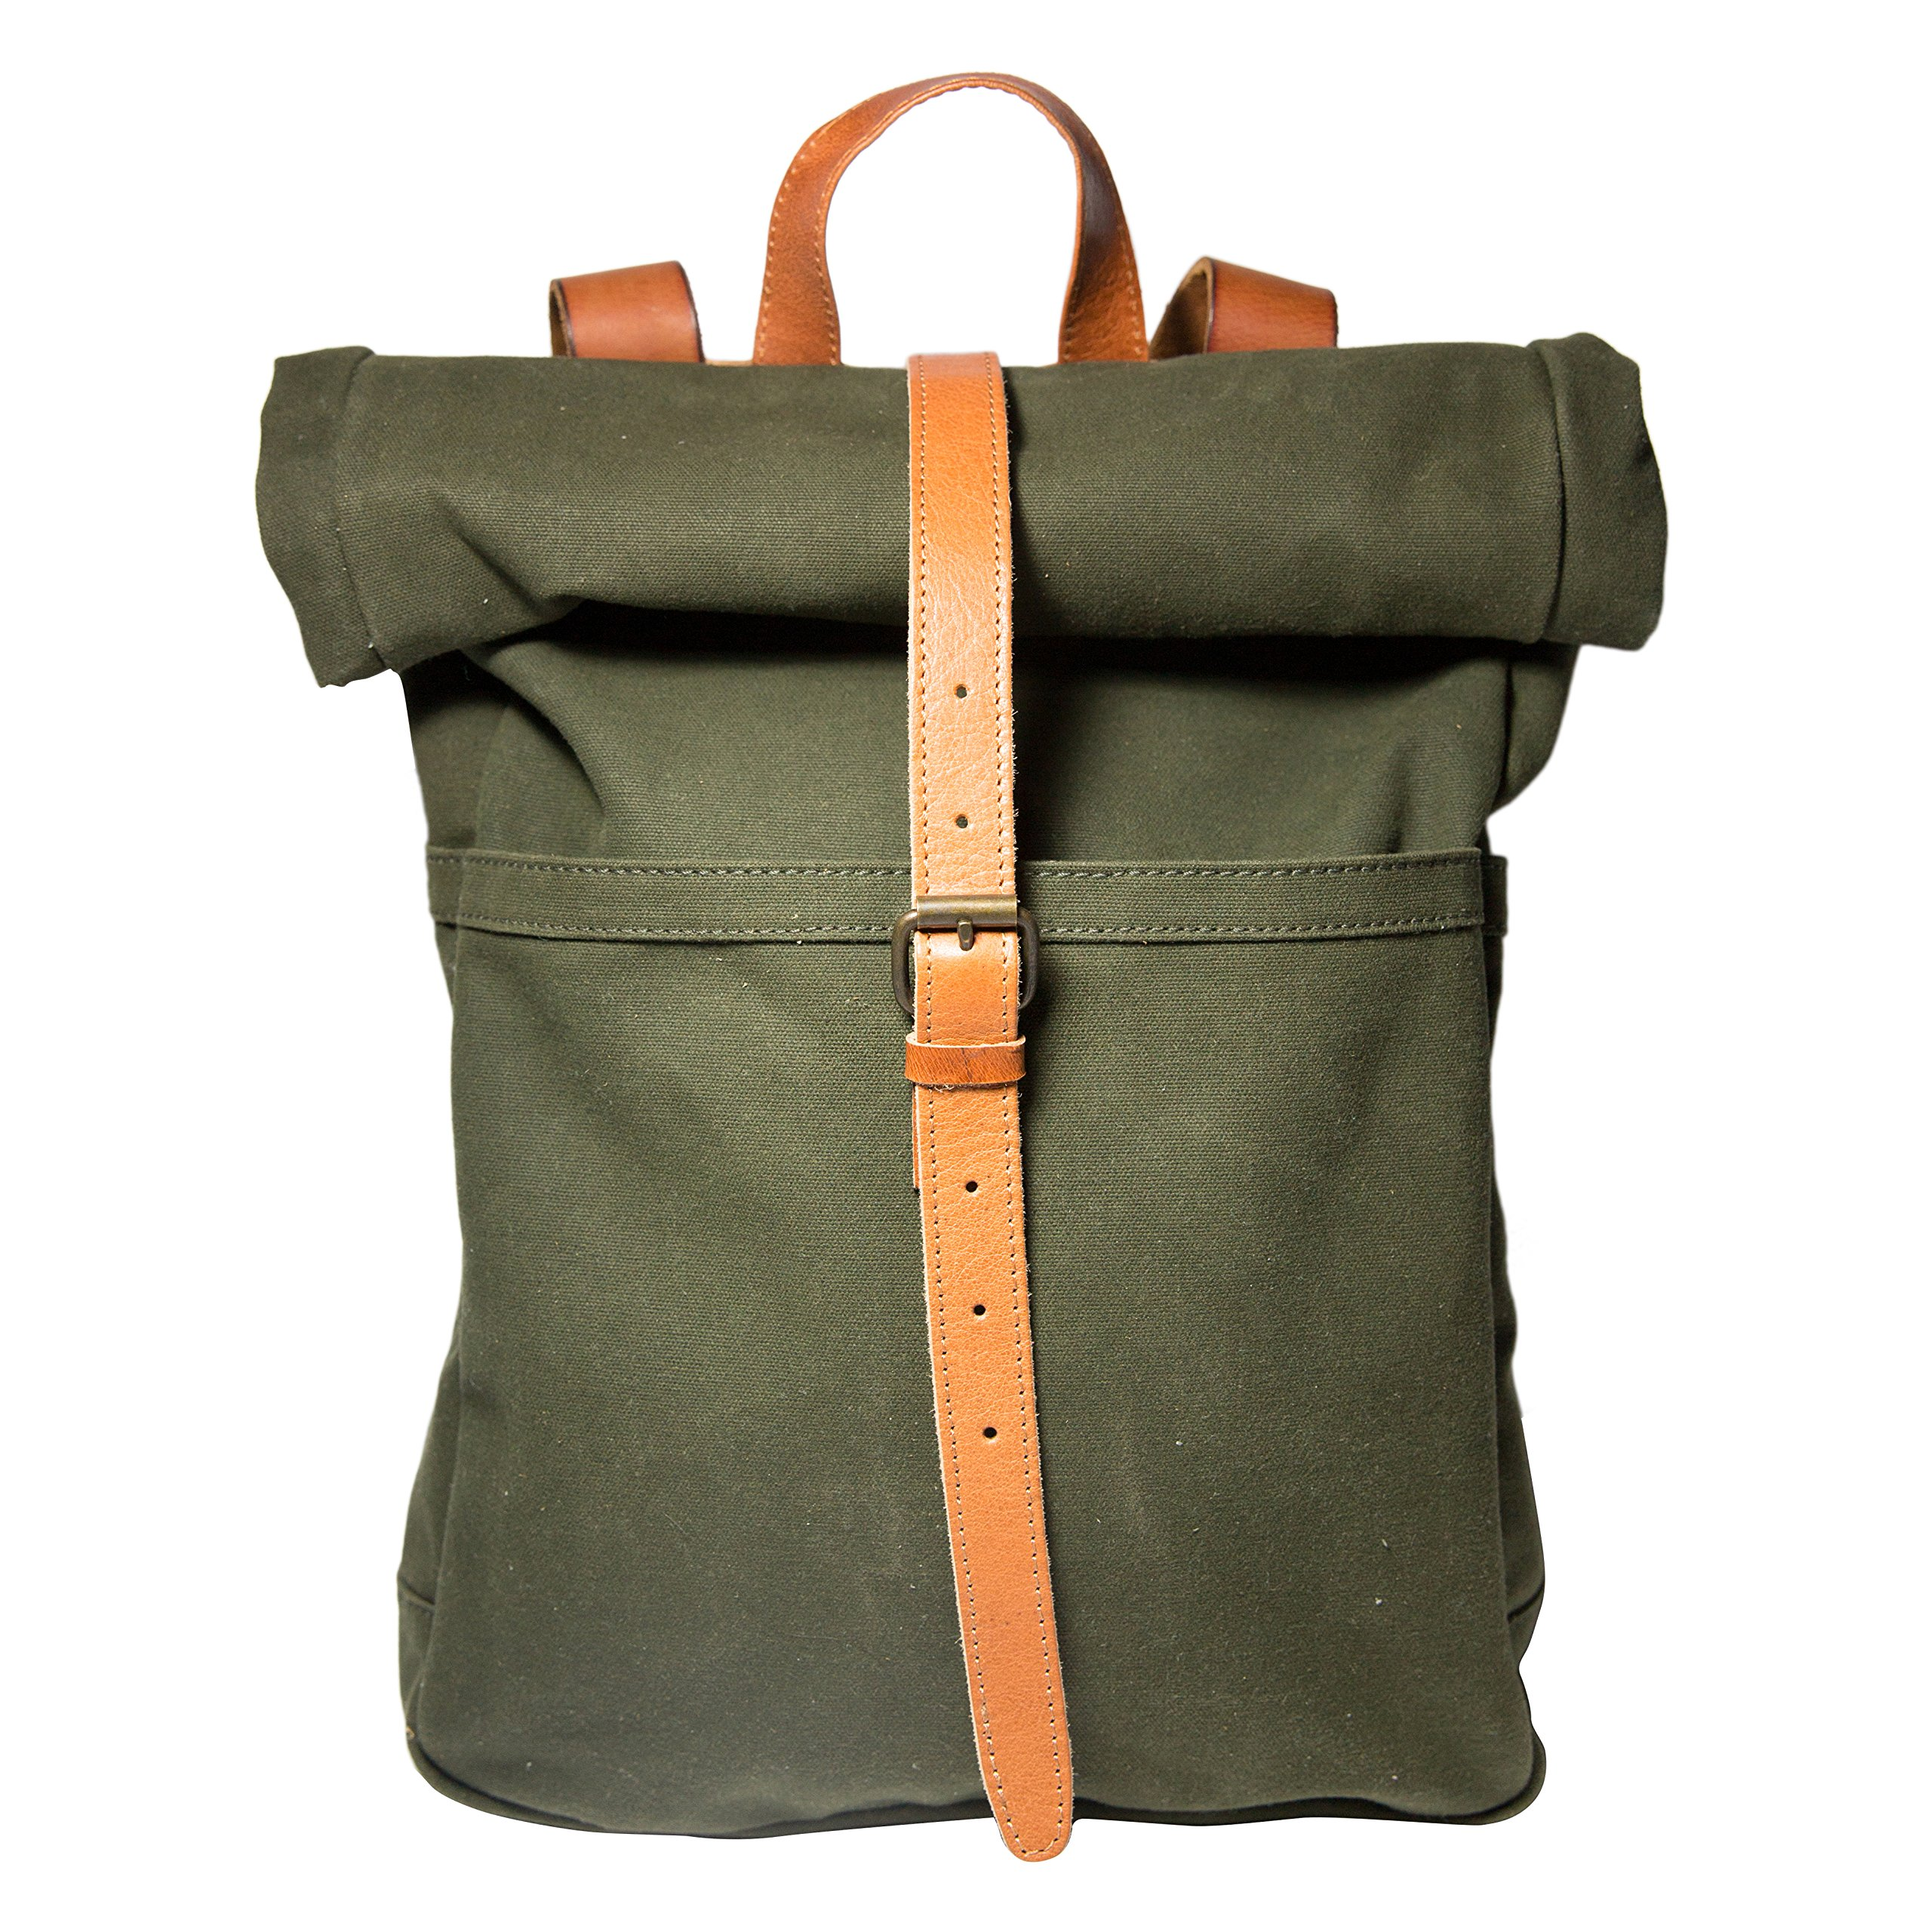 Moss Green Canvas & Leather Backpack, Canvas Rucksack, Small Canvas Backpack, Travel Bag